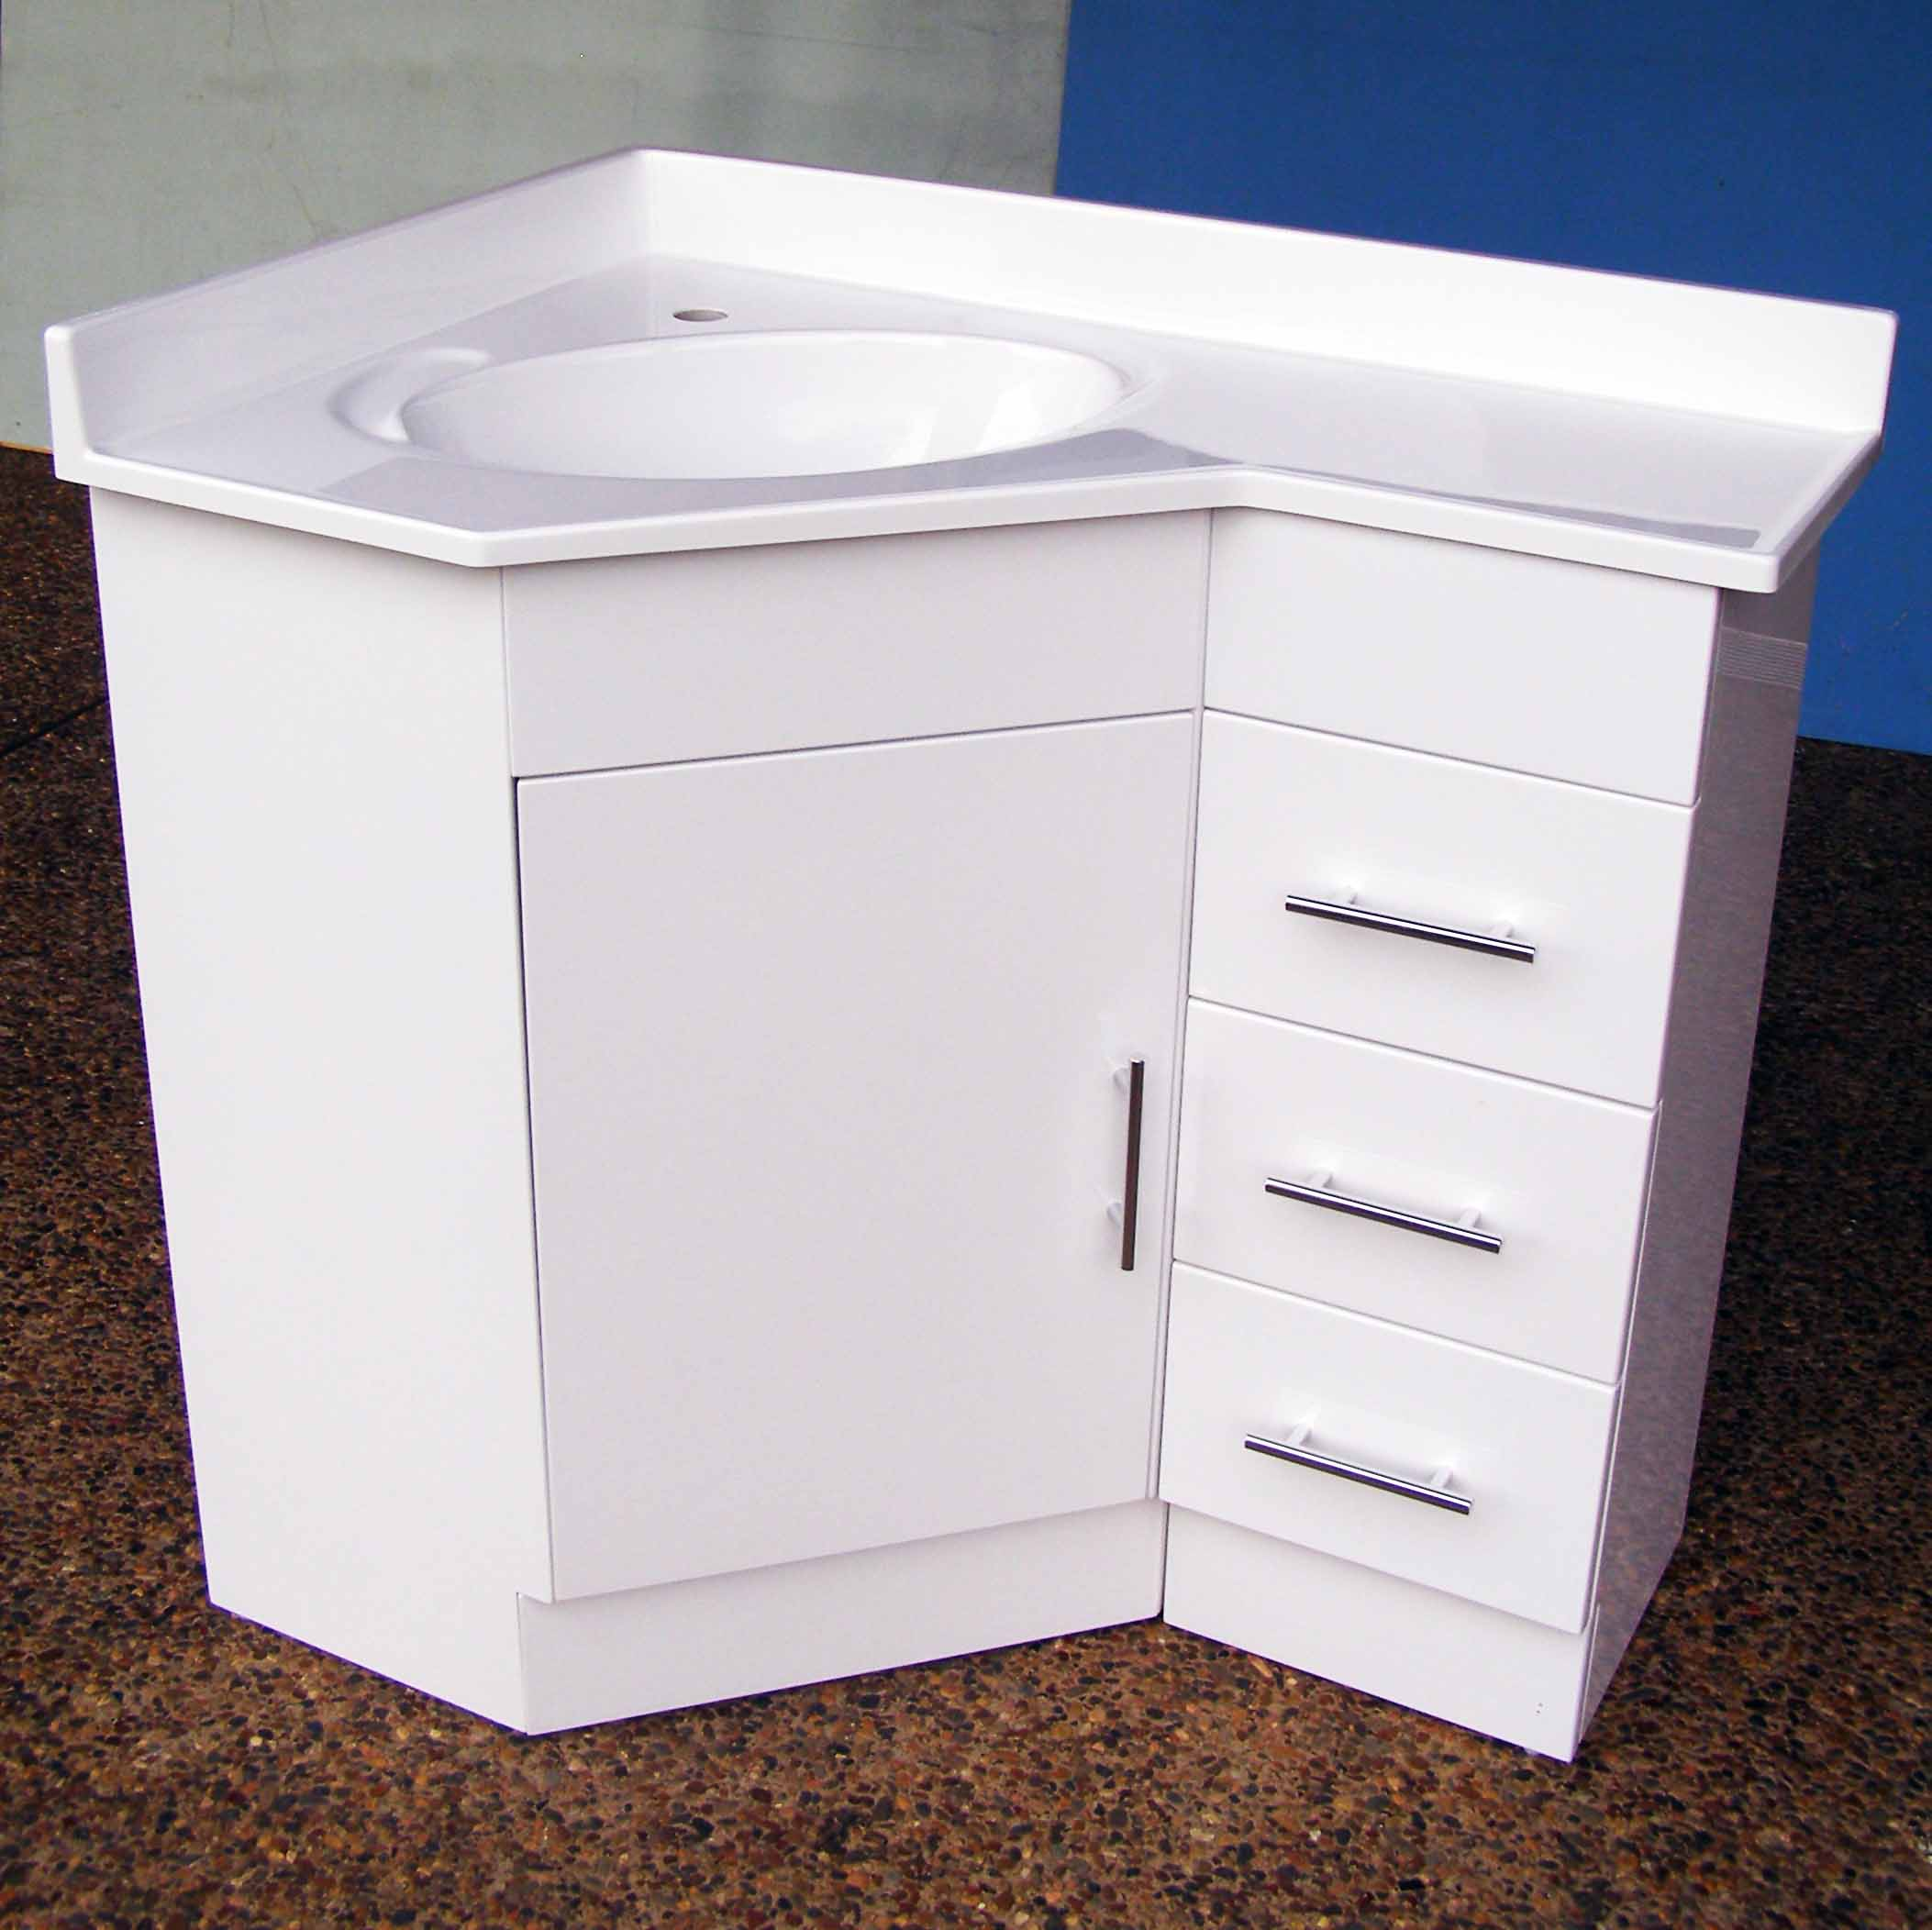 Corner Basin And Vanity Unit : Home ? Vanity ? Corner Vanity Units ? Corner Vanity 690R 610x910mm ...